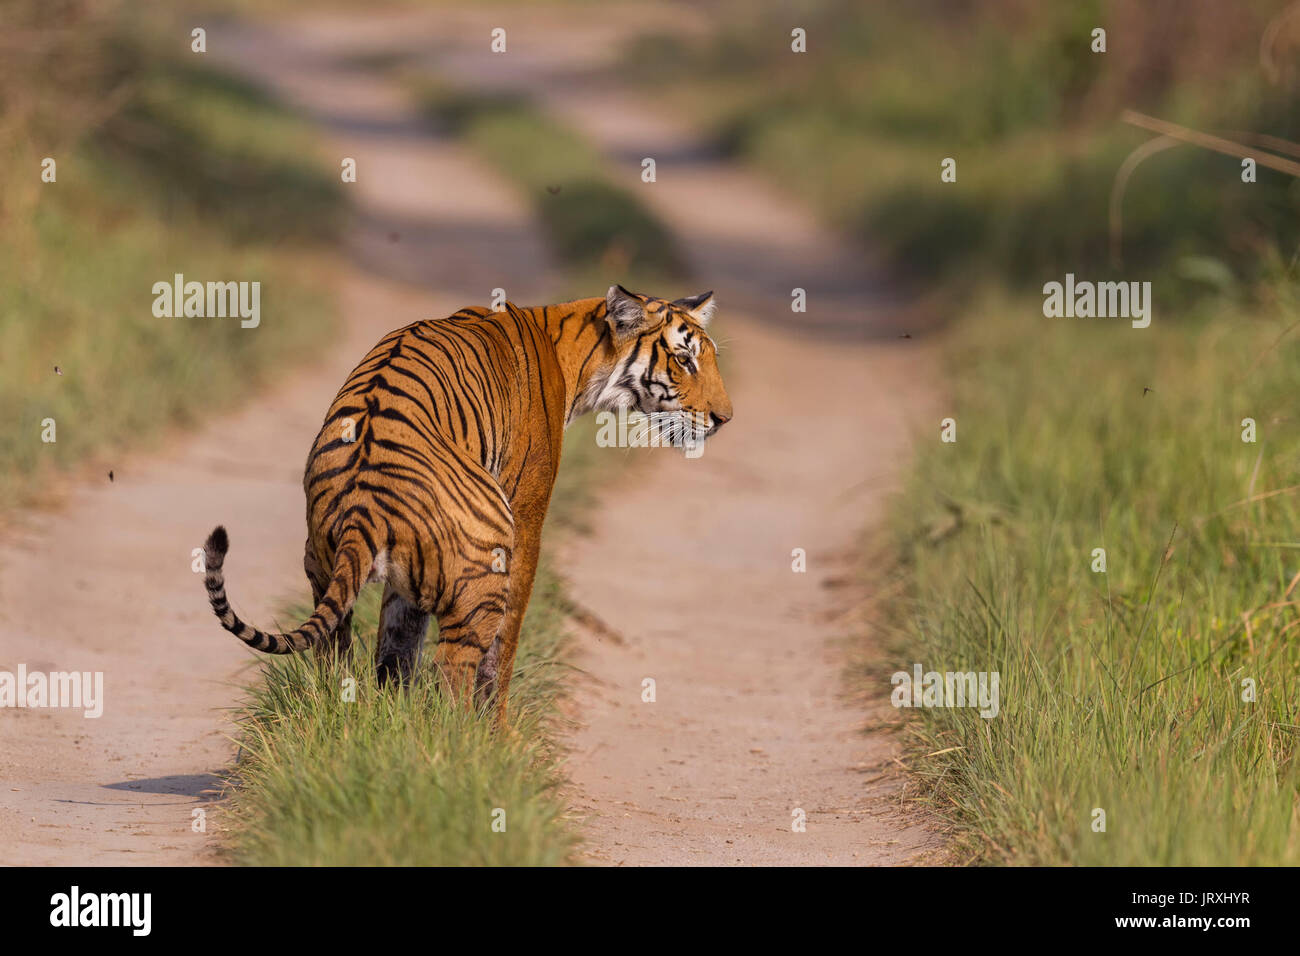 Royal Bengal Tiger or Panthera tigris tigris or Indian Tiger in Jim Corbett National Park in Uttarakhand, India. - Stock Image